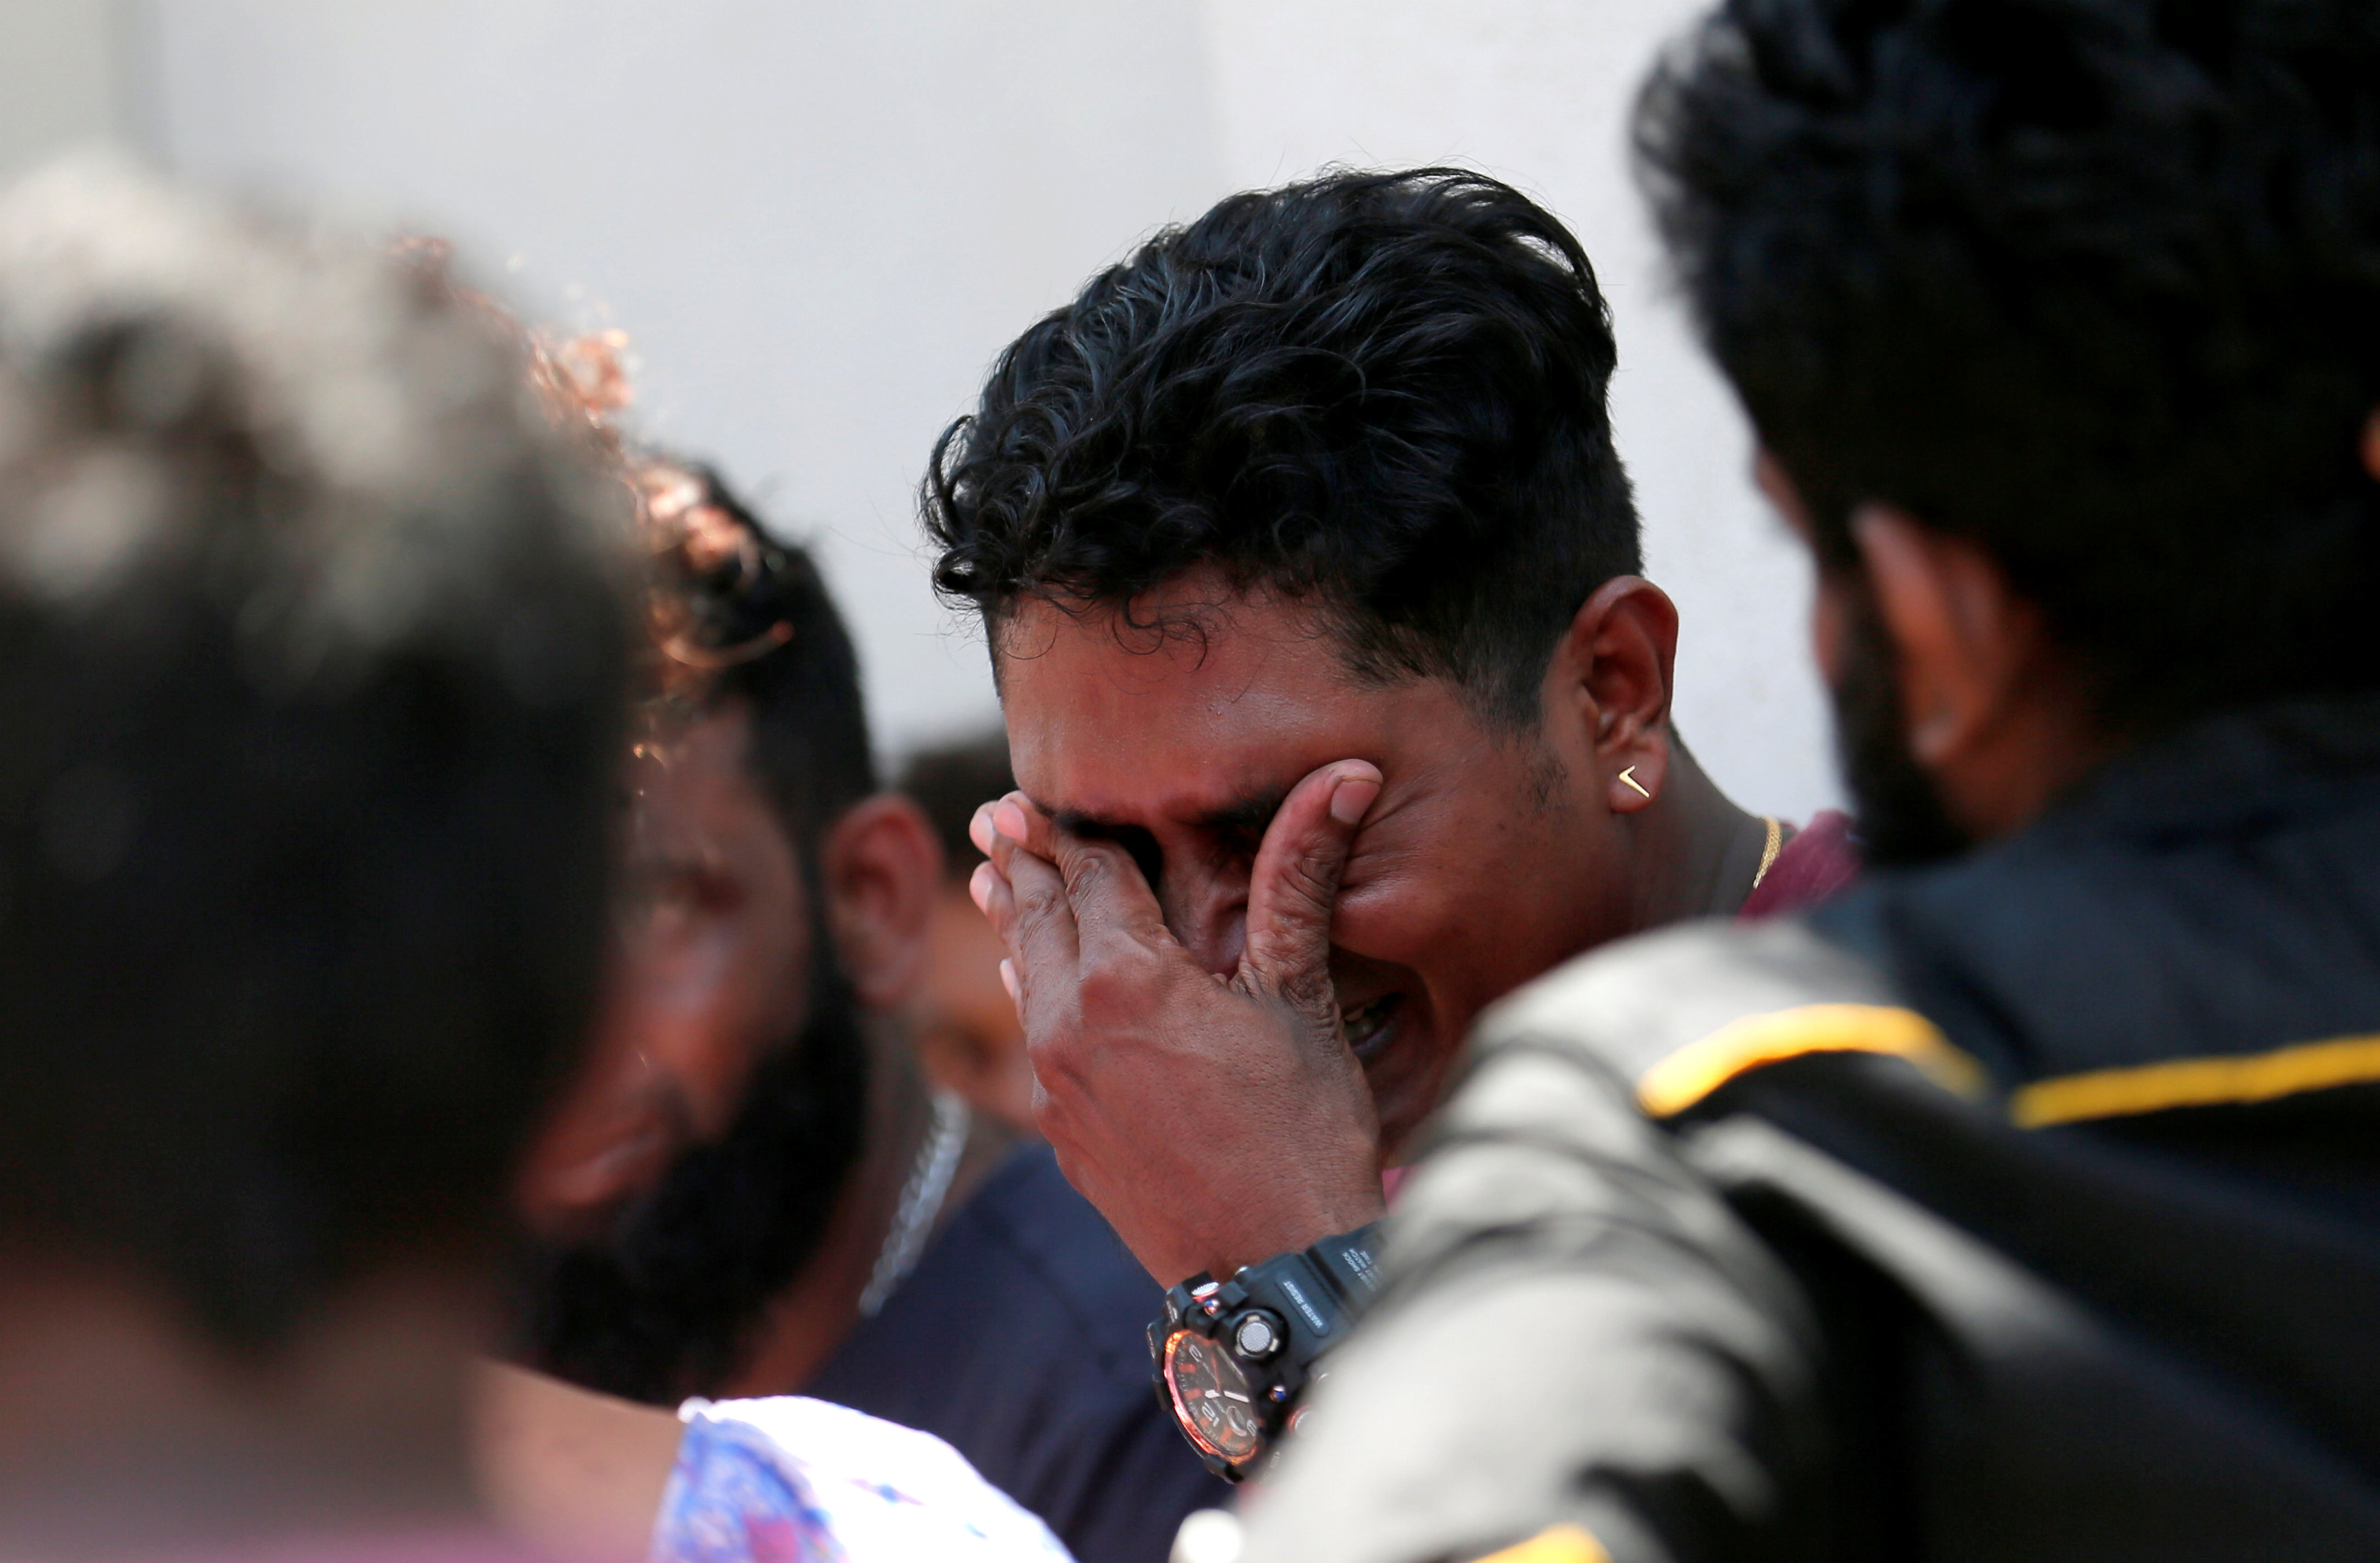 A relative of a victim of the explosion at St. Anthony's Shrine, Kochchikade church reacts at the police mortuary in Colombo, Sri Lanka April 21, 2019. REUTERS/Dinuka Liyanawatte